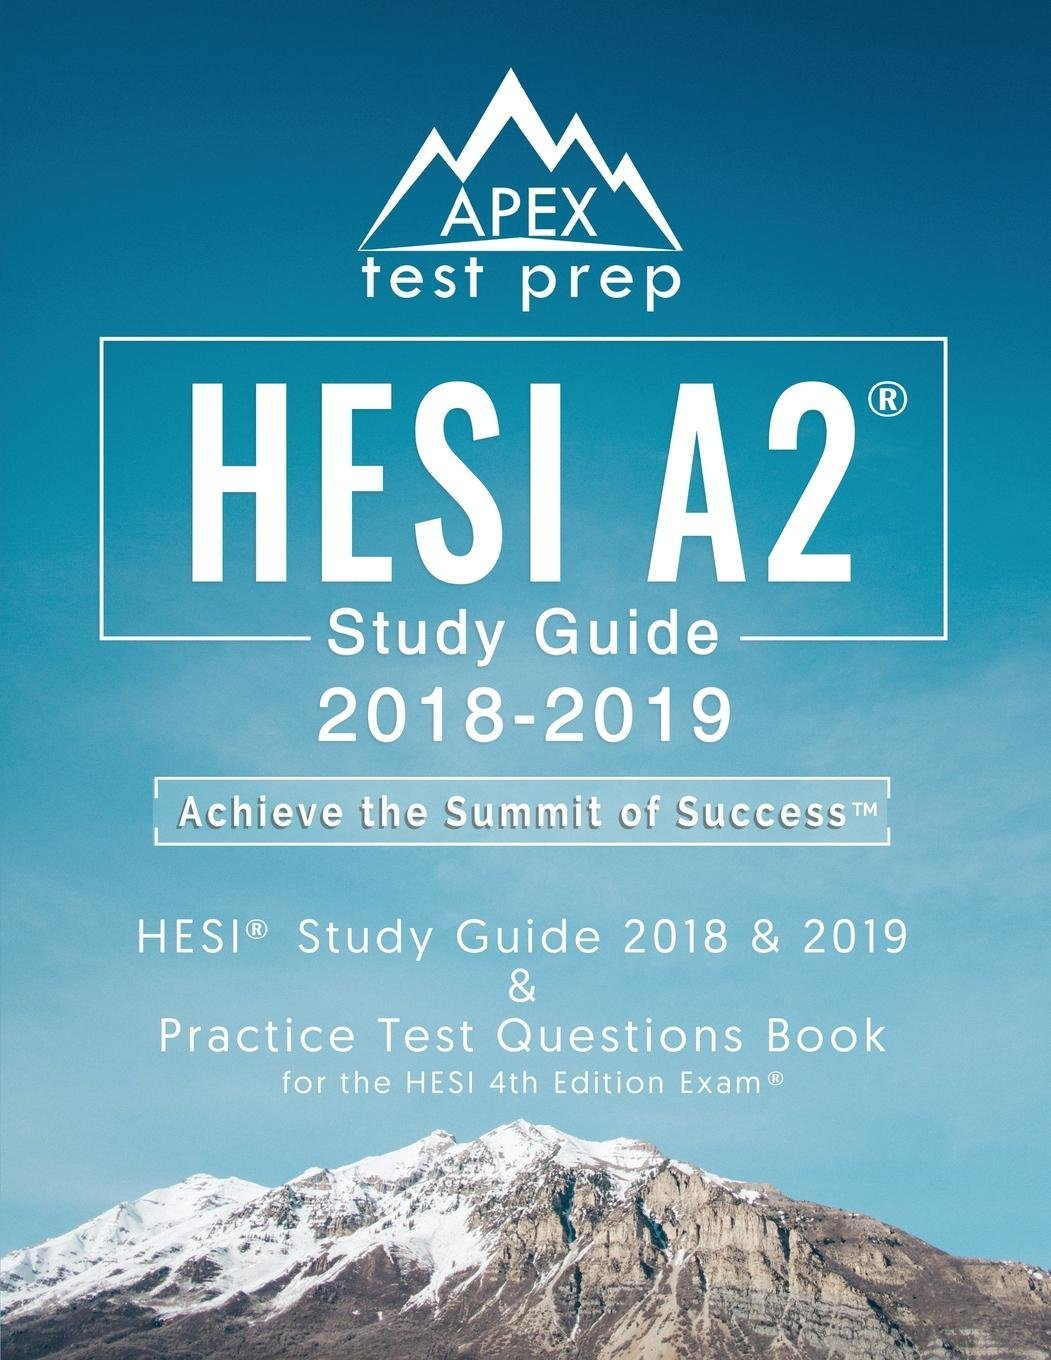 HESI A2 Study Guide 2018 & 2019: HESI Study Guide 2018 & 2019 and ...